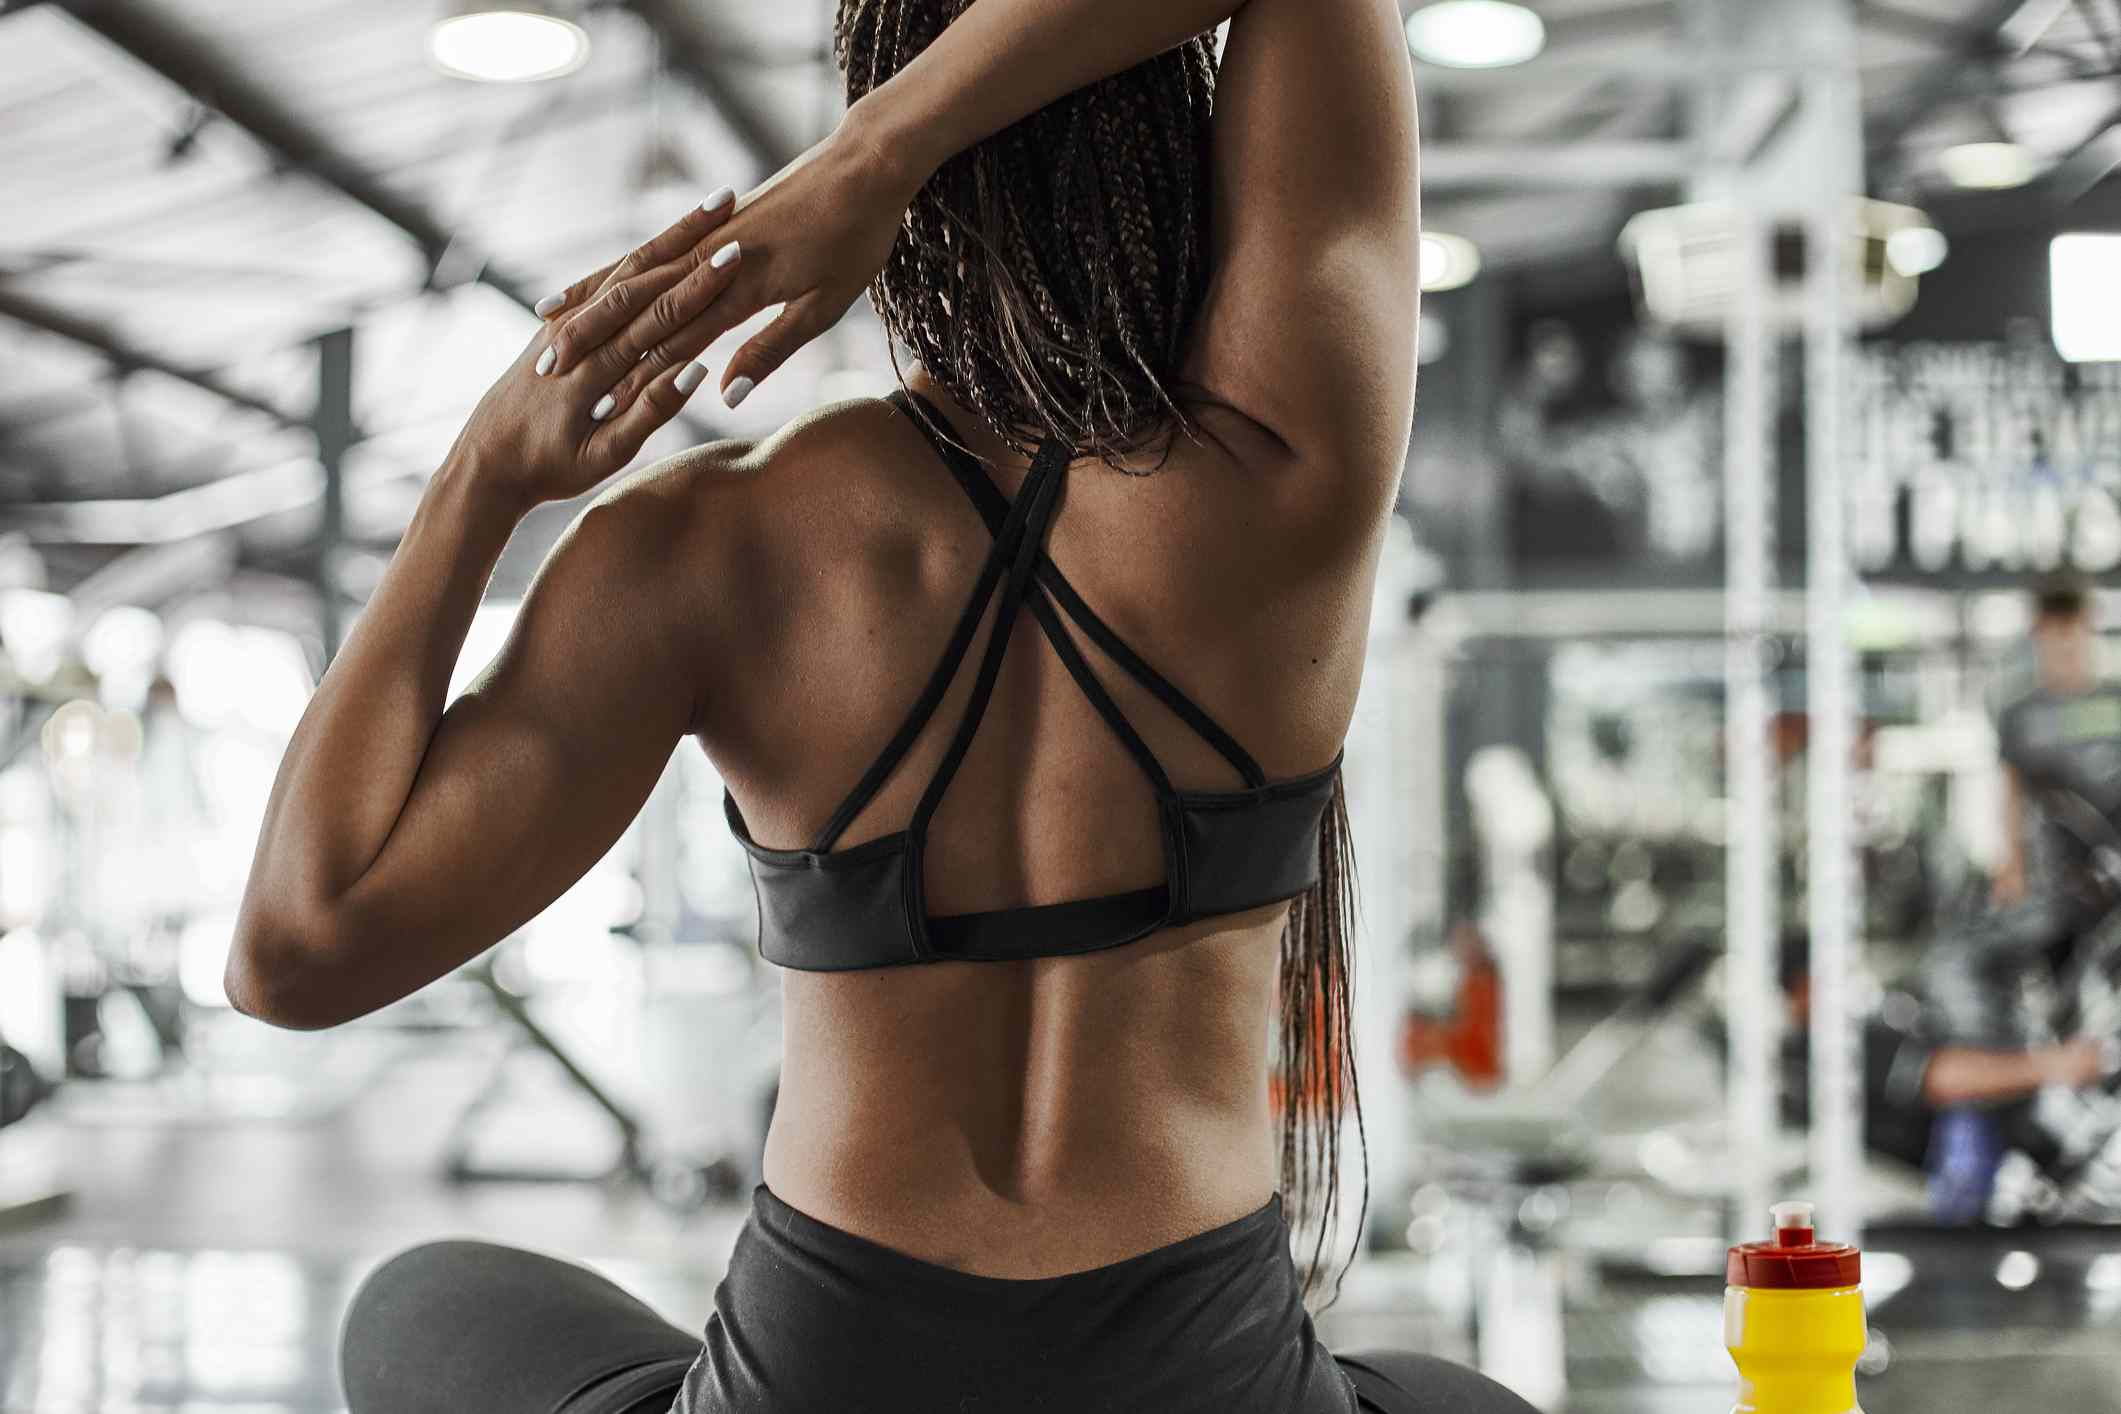 A woman stretching their muscles in the gym